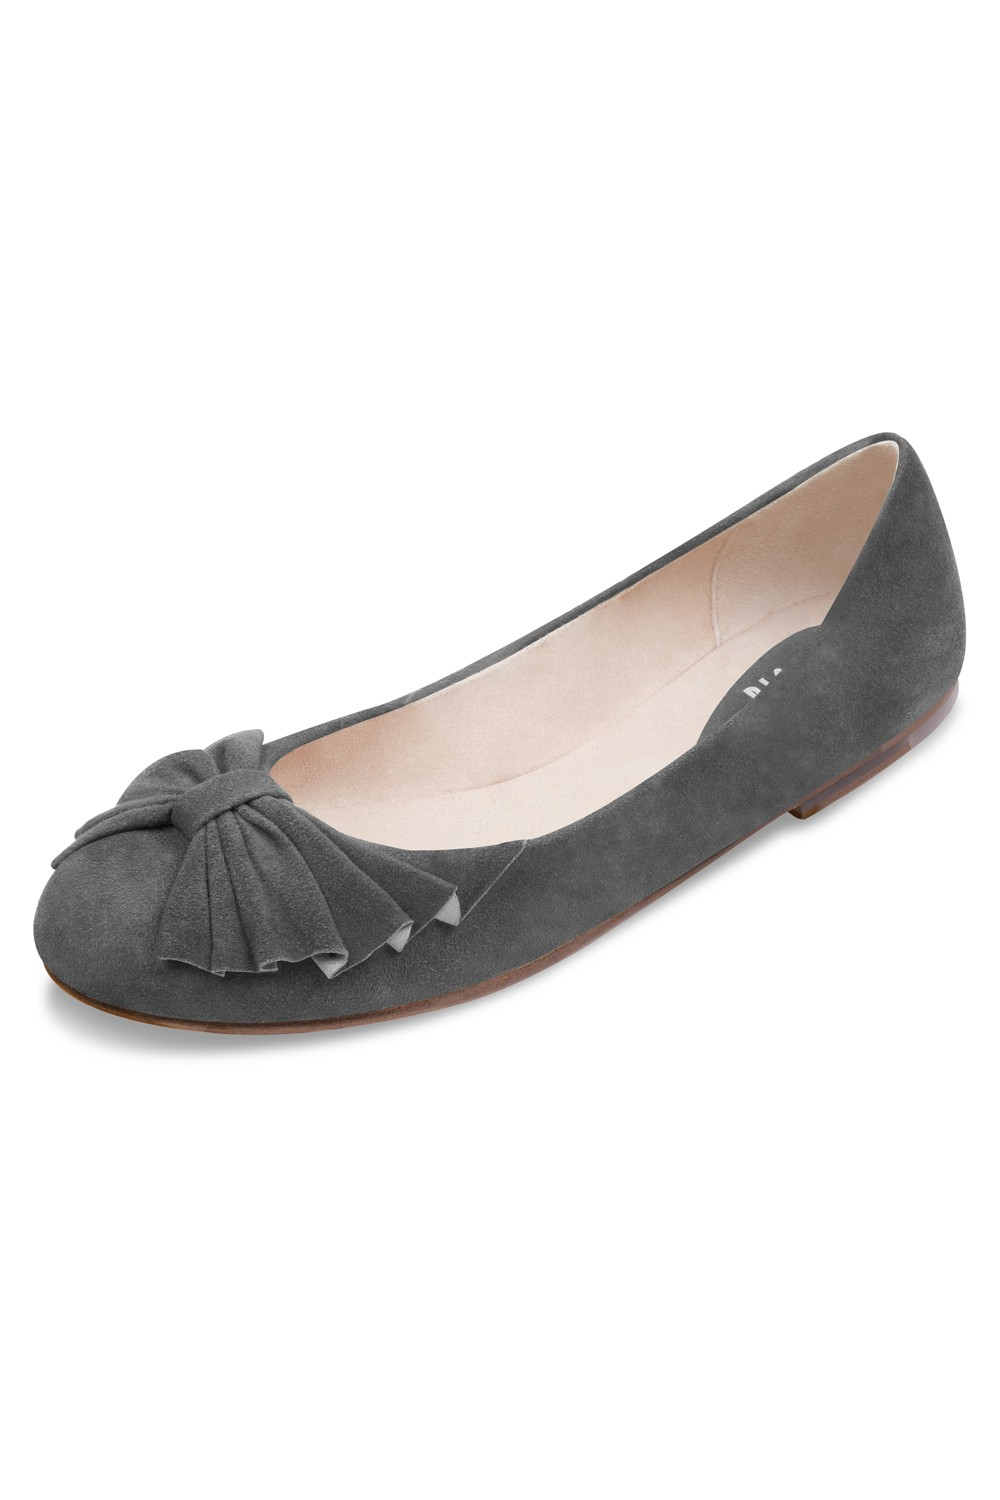 Valerie Womens Fashion Shoes